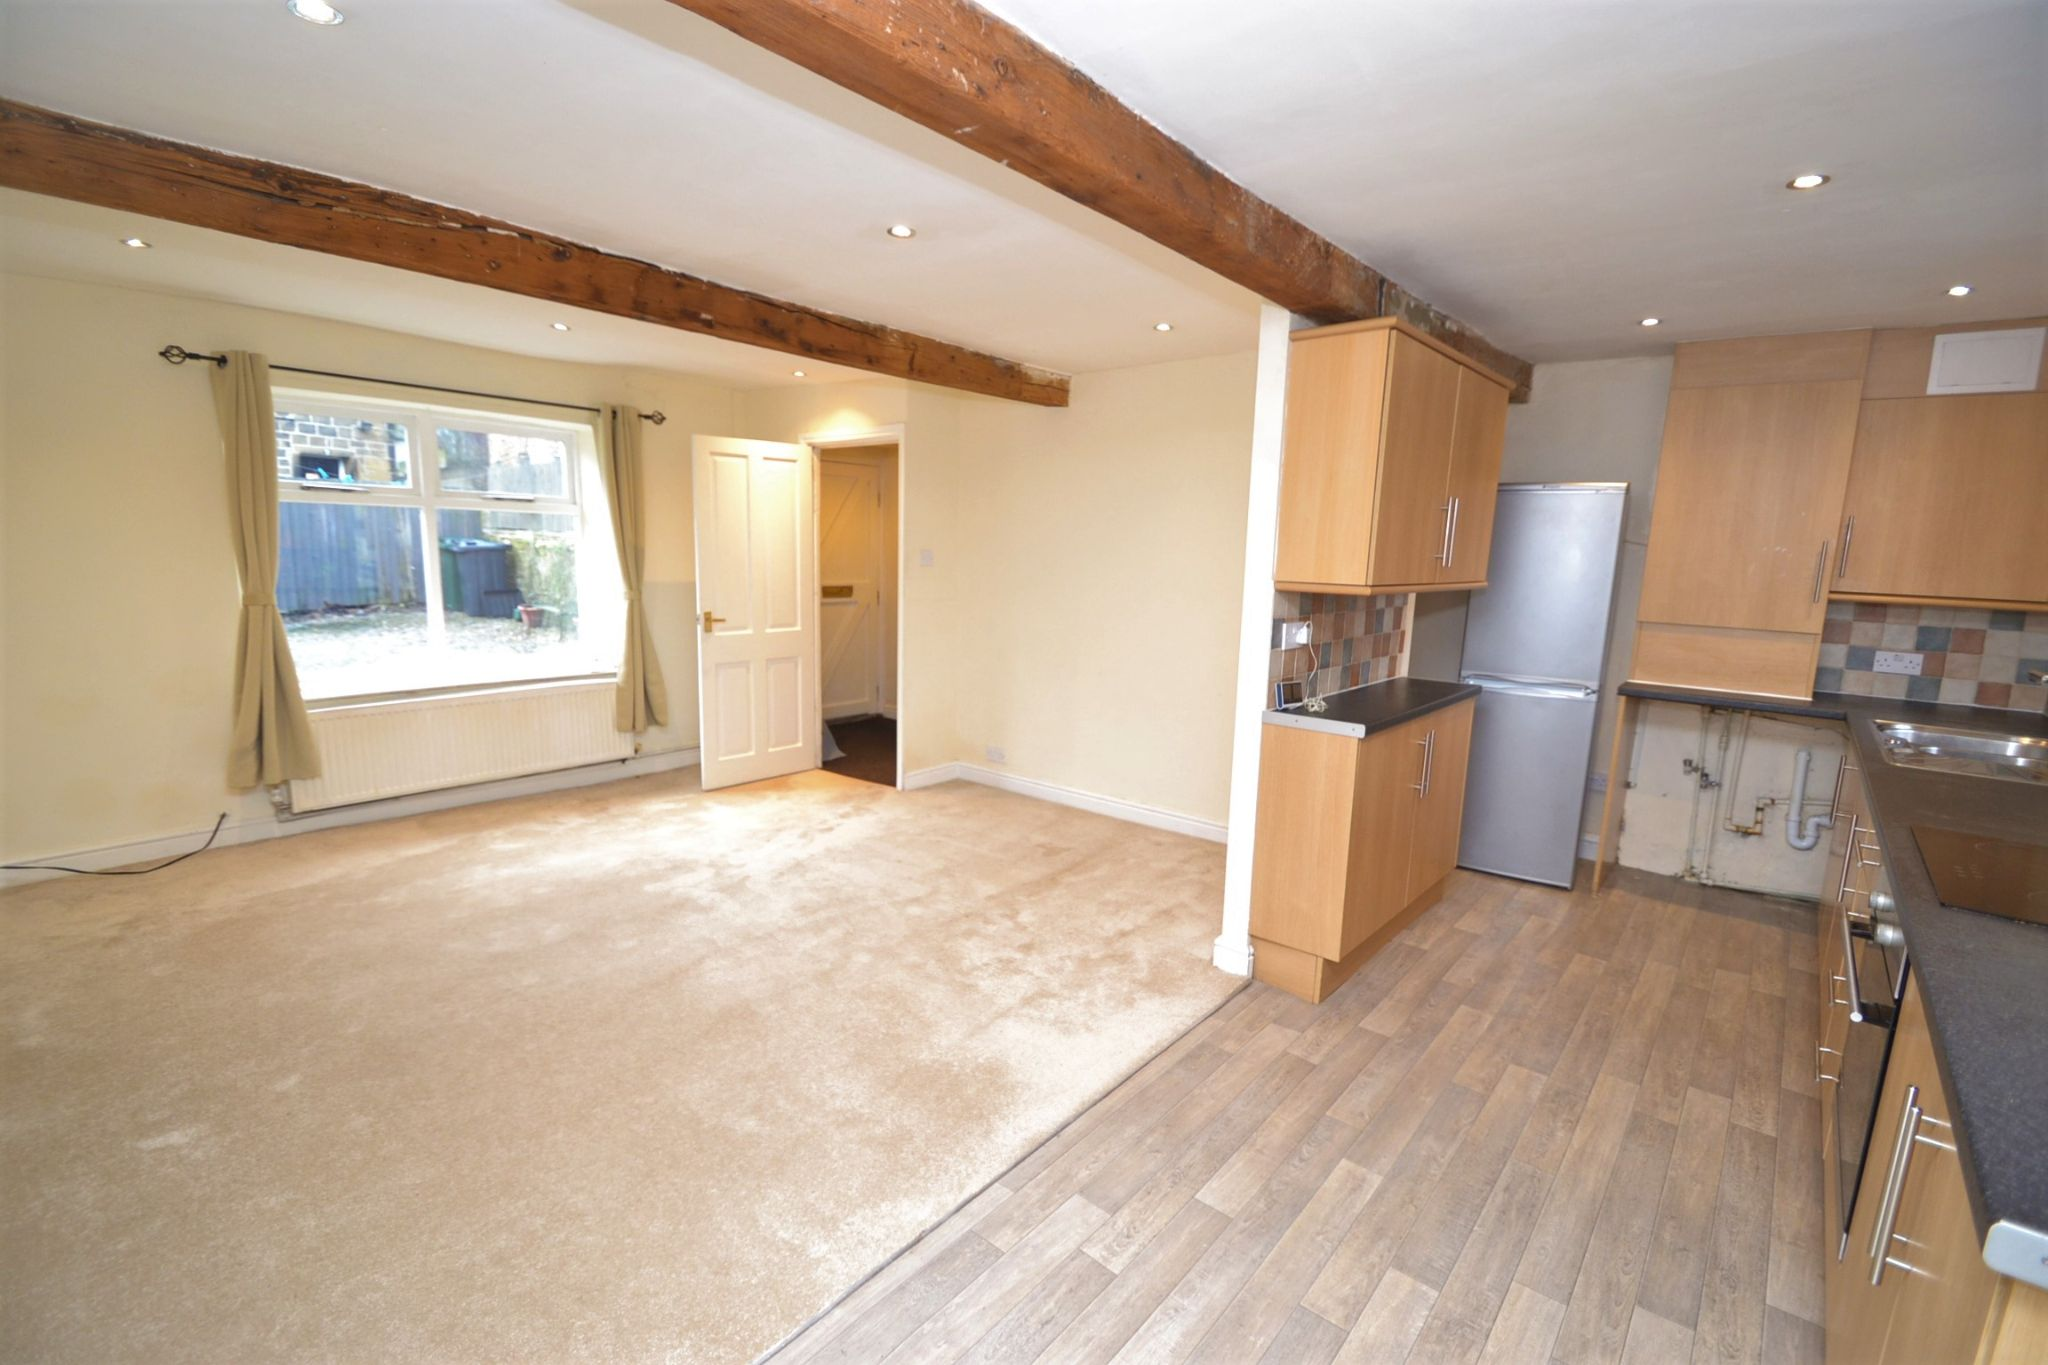 3 Bedroom Cottage House For Sale - Photograph 5